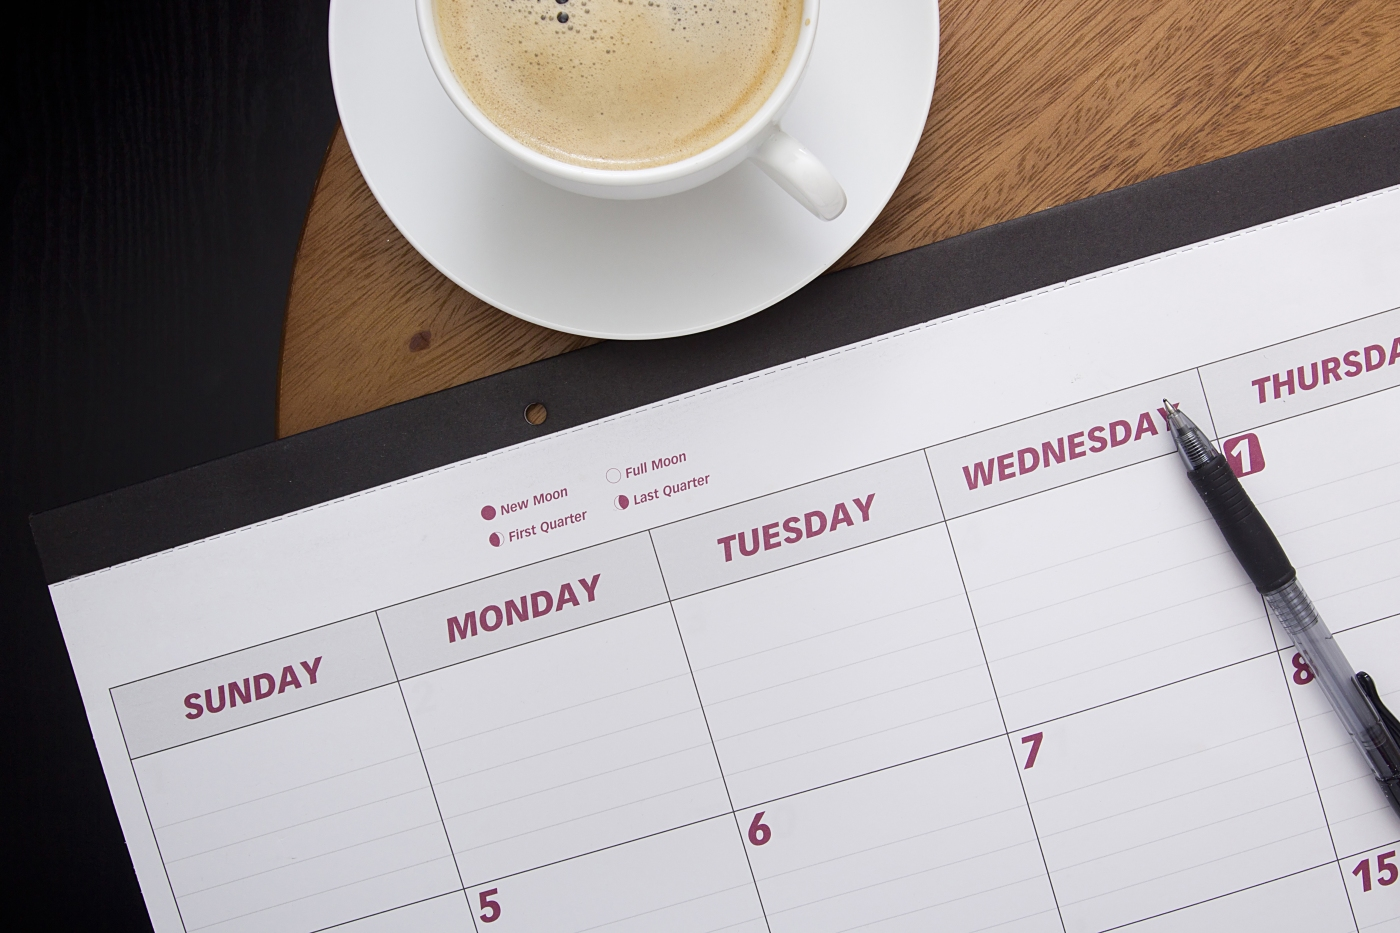 Office calendar planner on the coffee table with a cup of coffee.